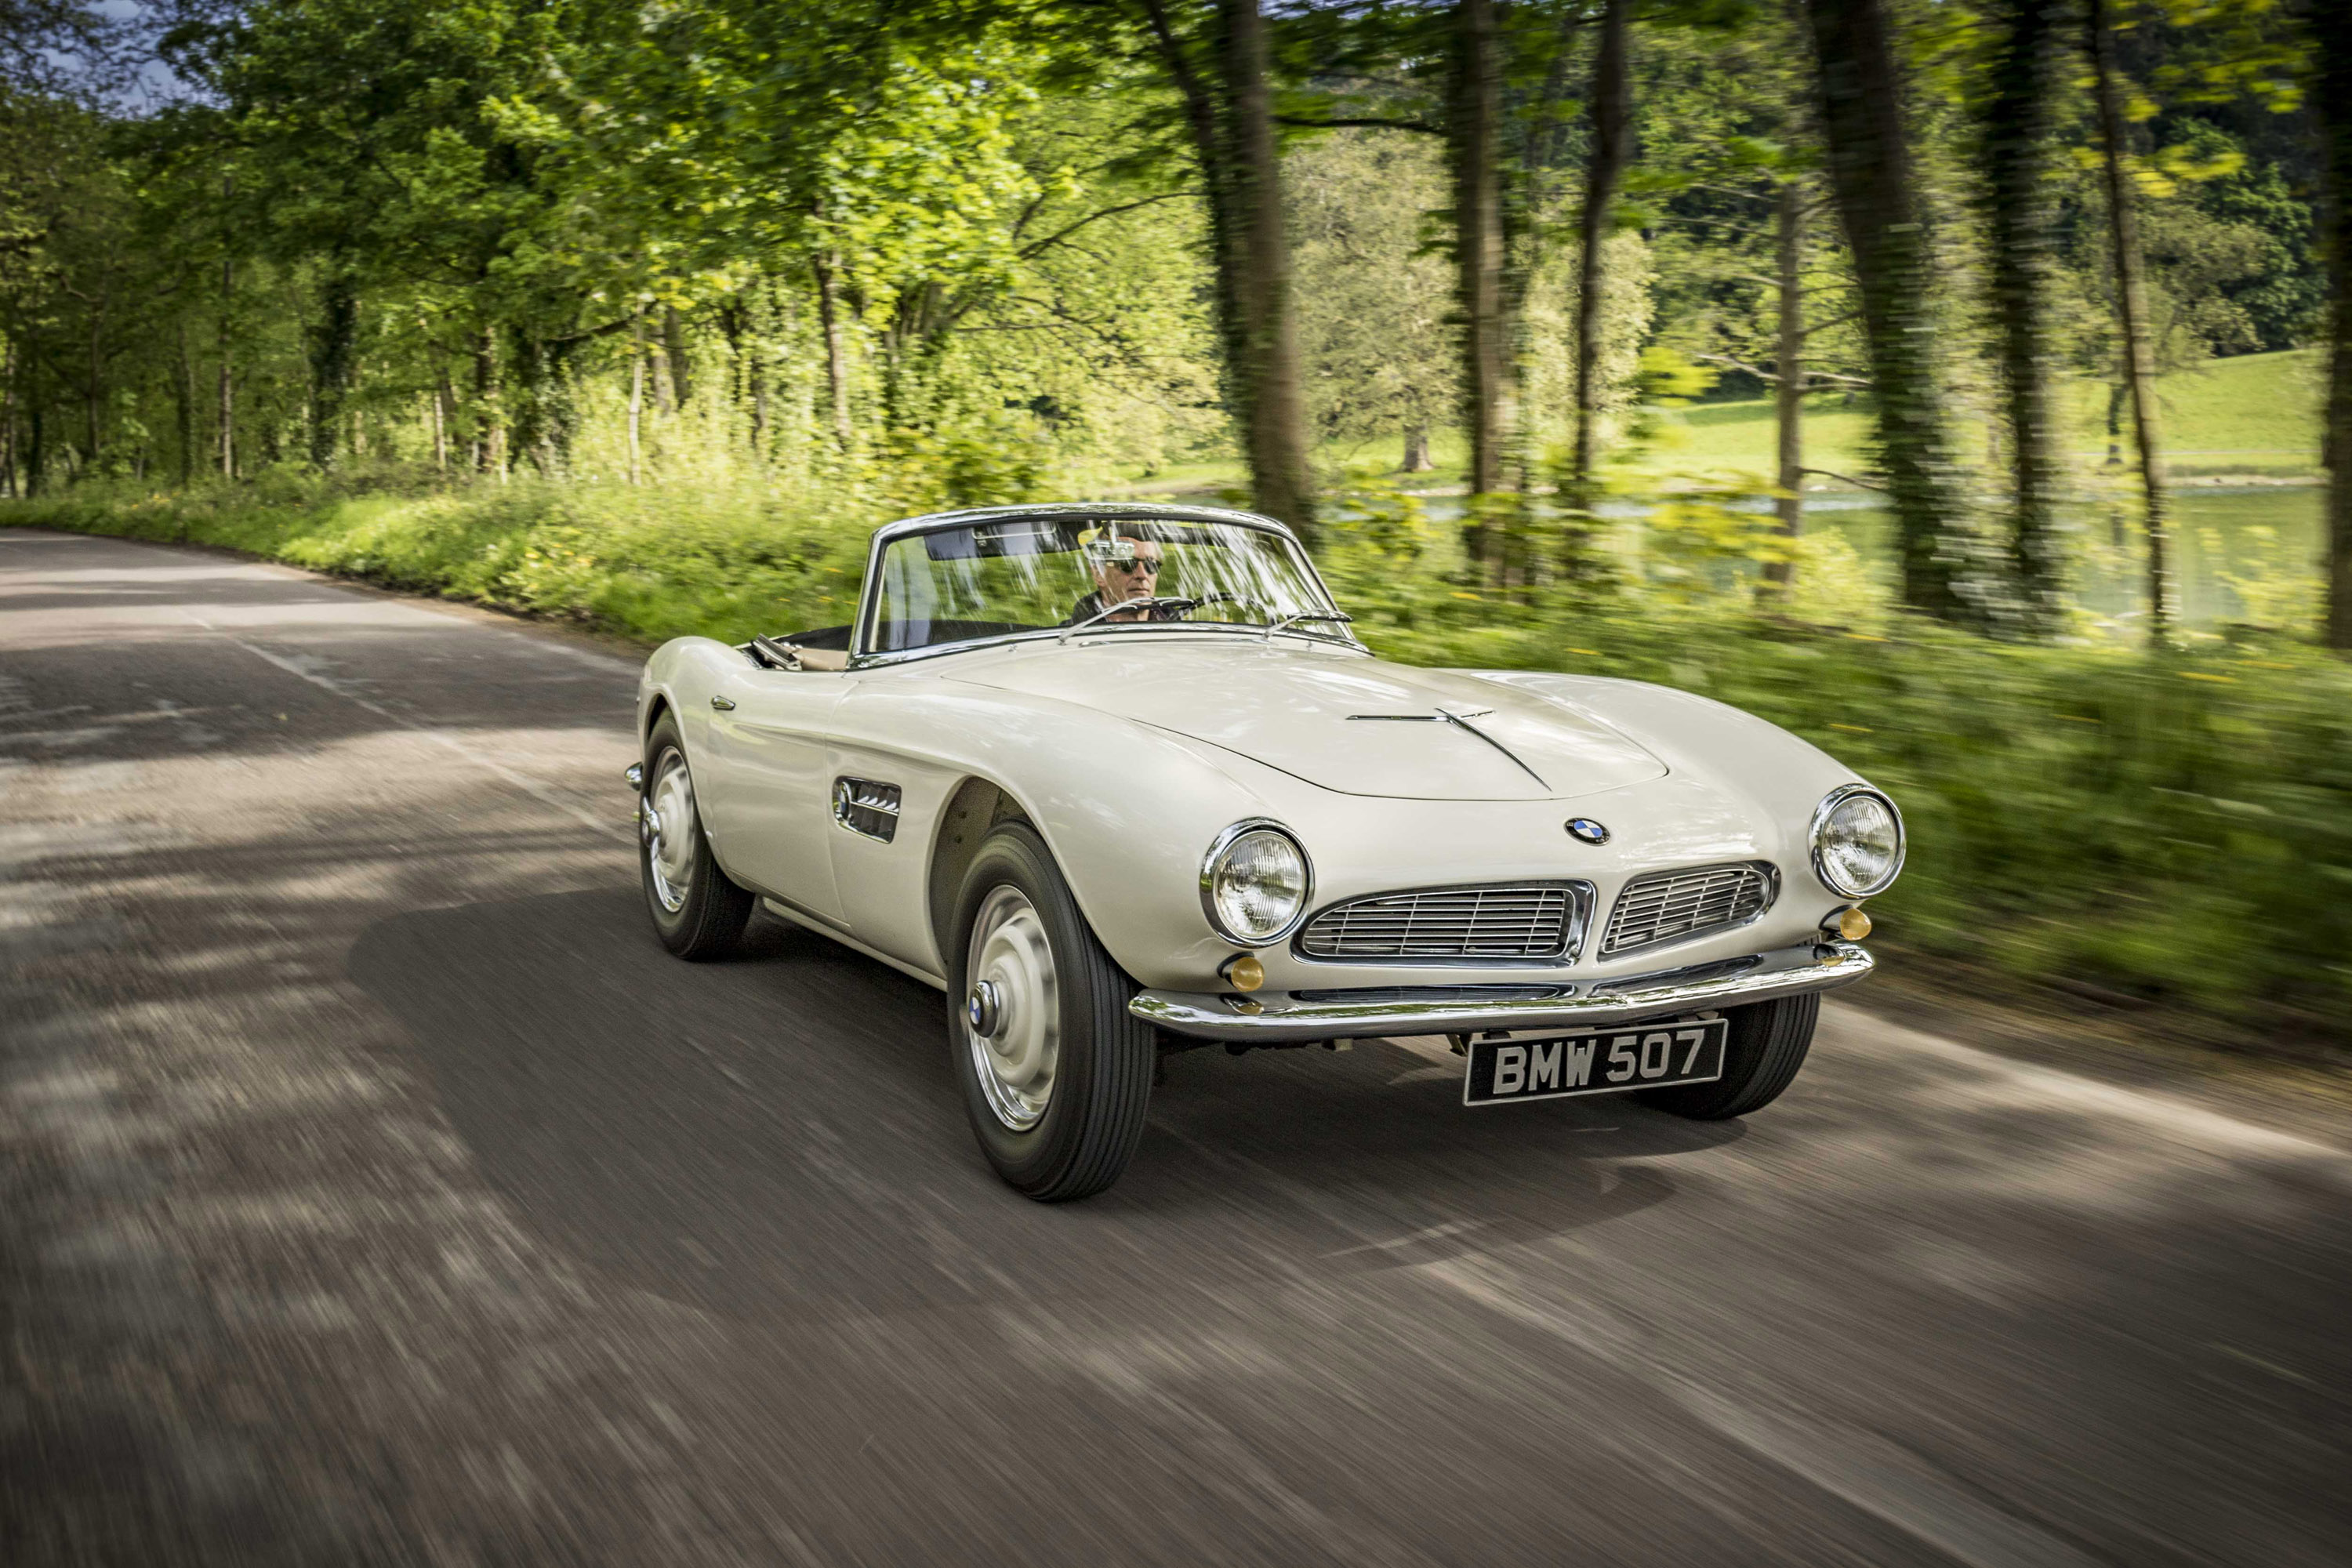 goodwood festival of speed opens with run of 1957 bmw 507. Black Bedroom Furniture Sets. Home Design Ideas